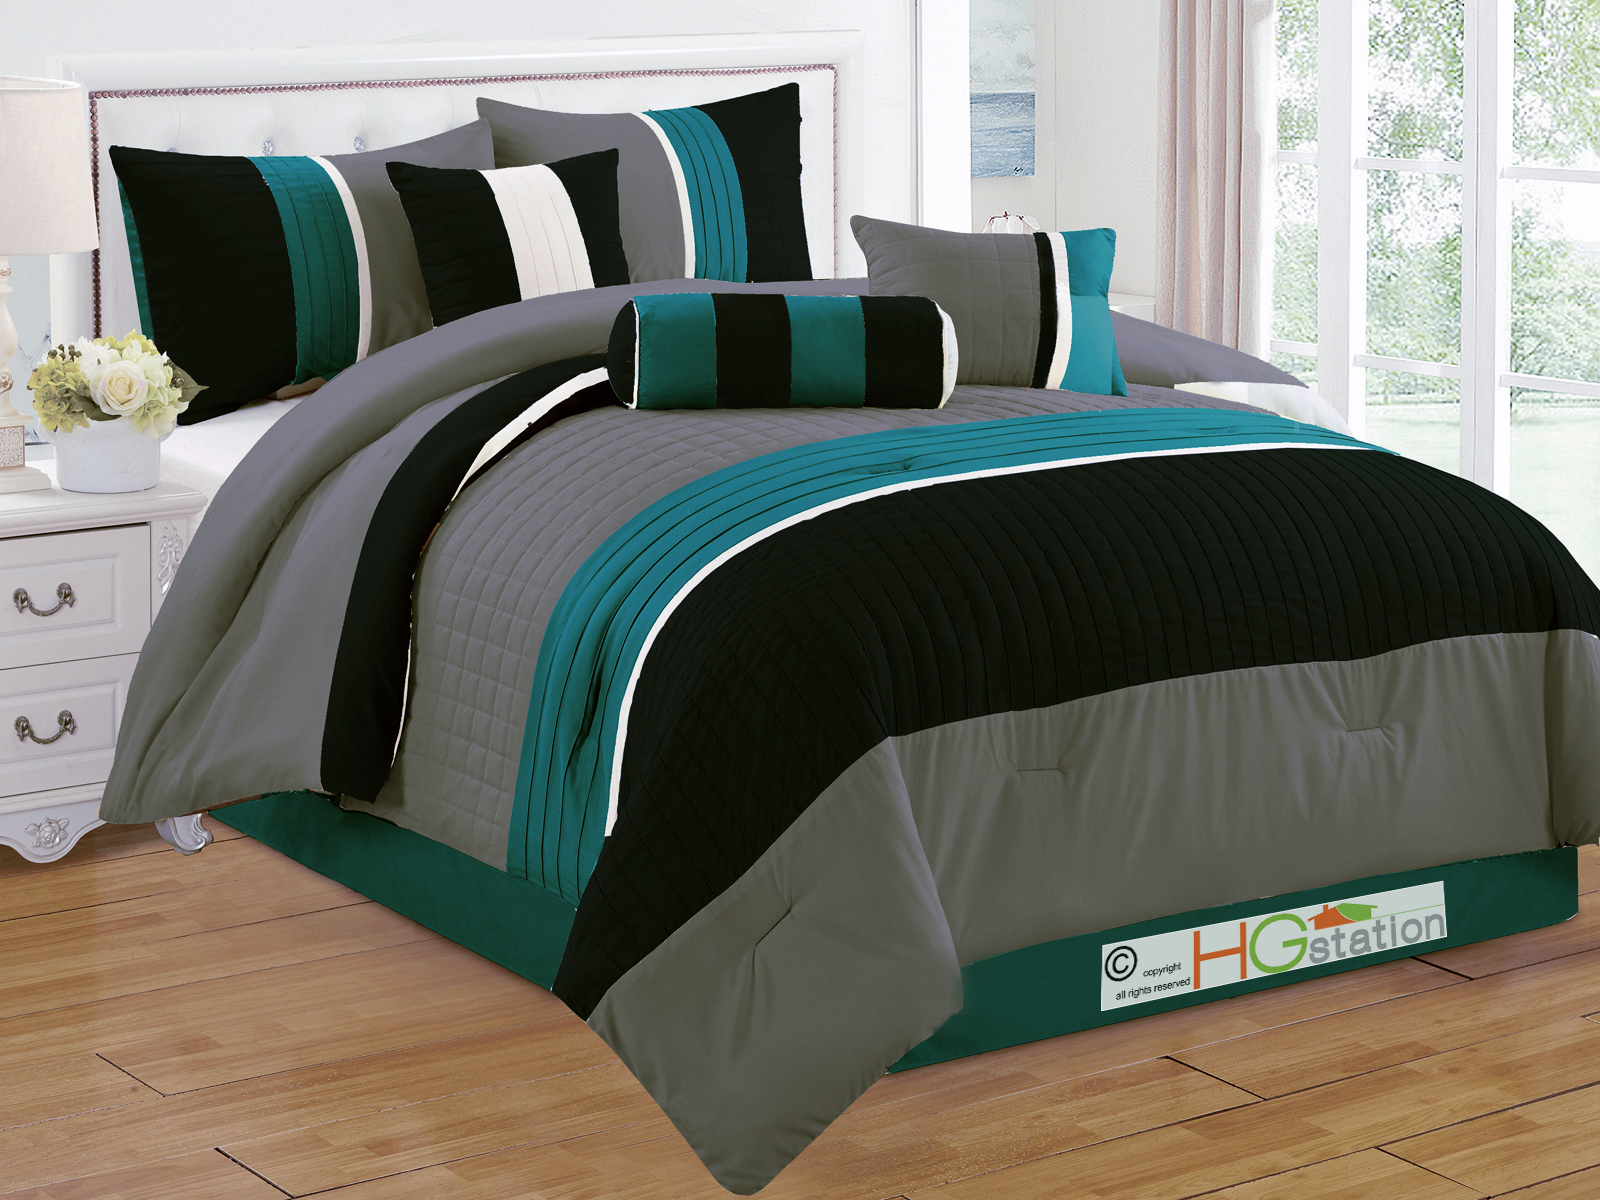 HG station 7-Pc Quilted Square Pleated Striped Comforter Set King Teal Blue-Green Black Gray Beige